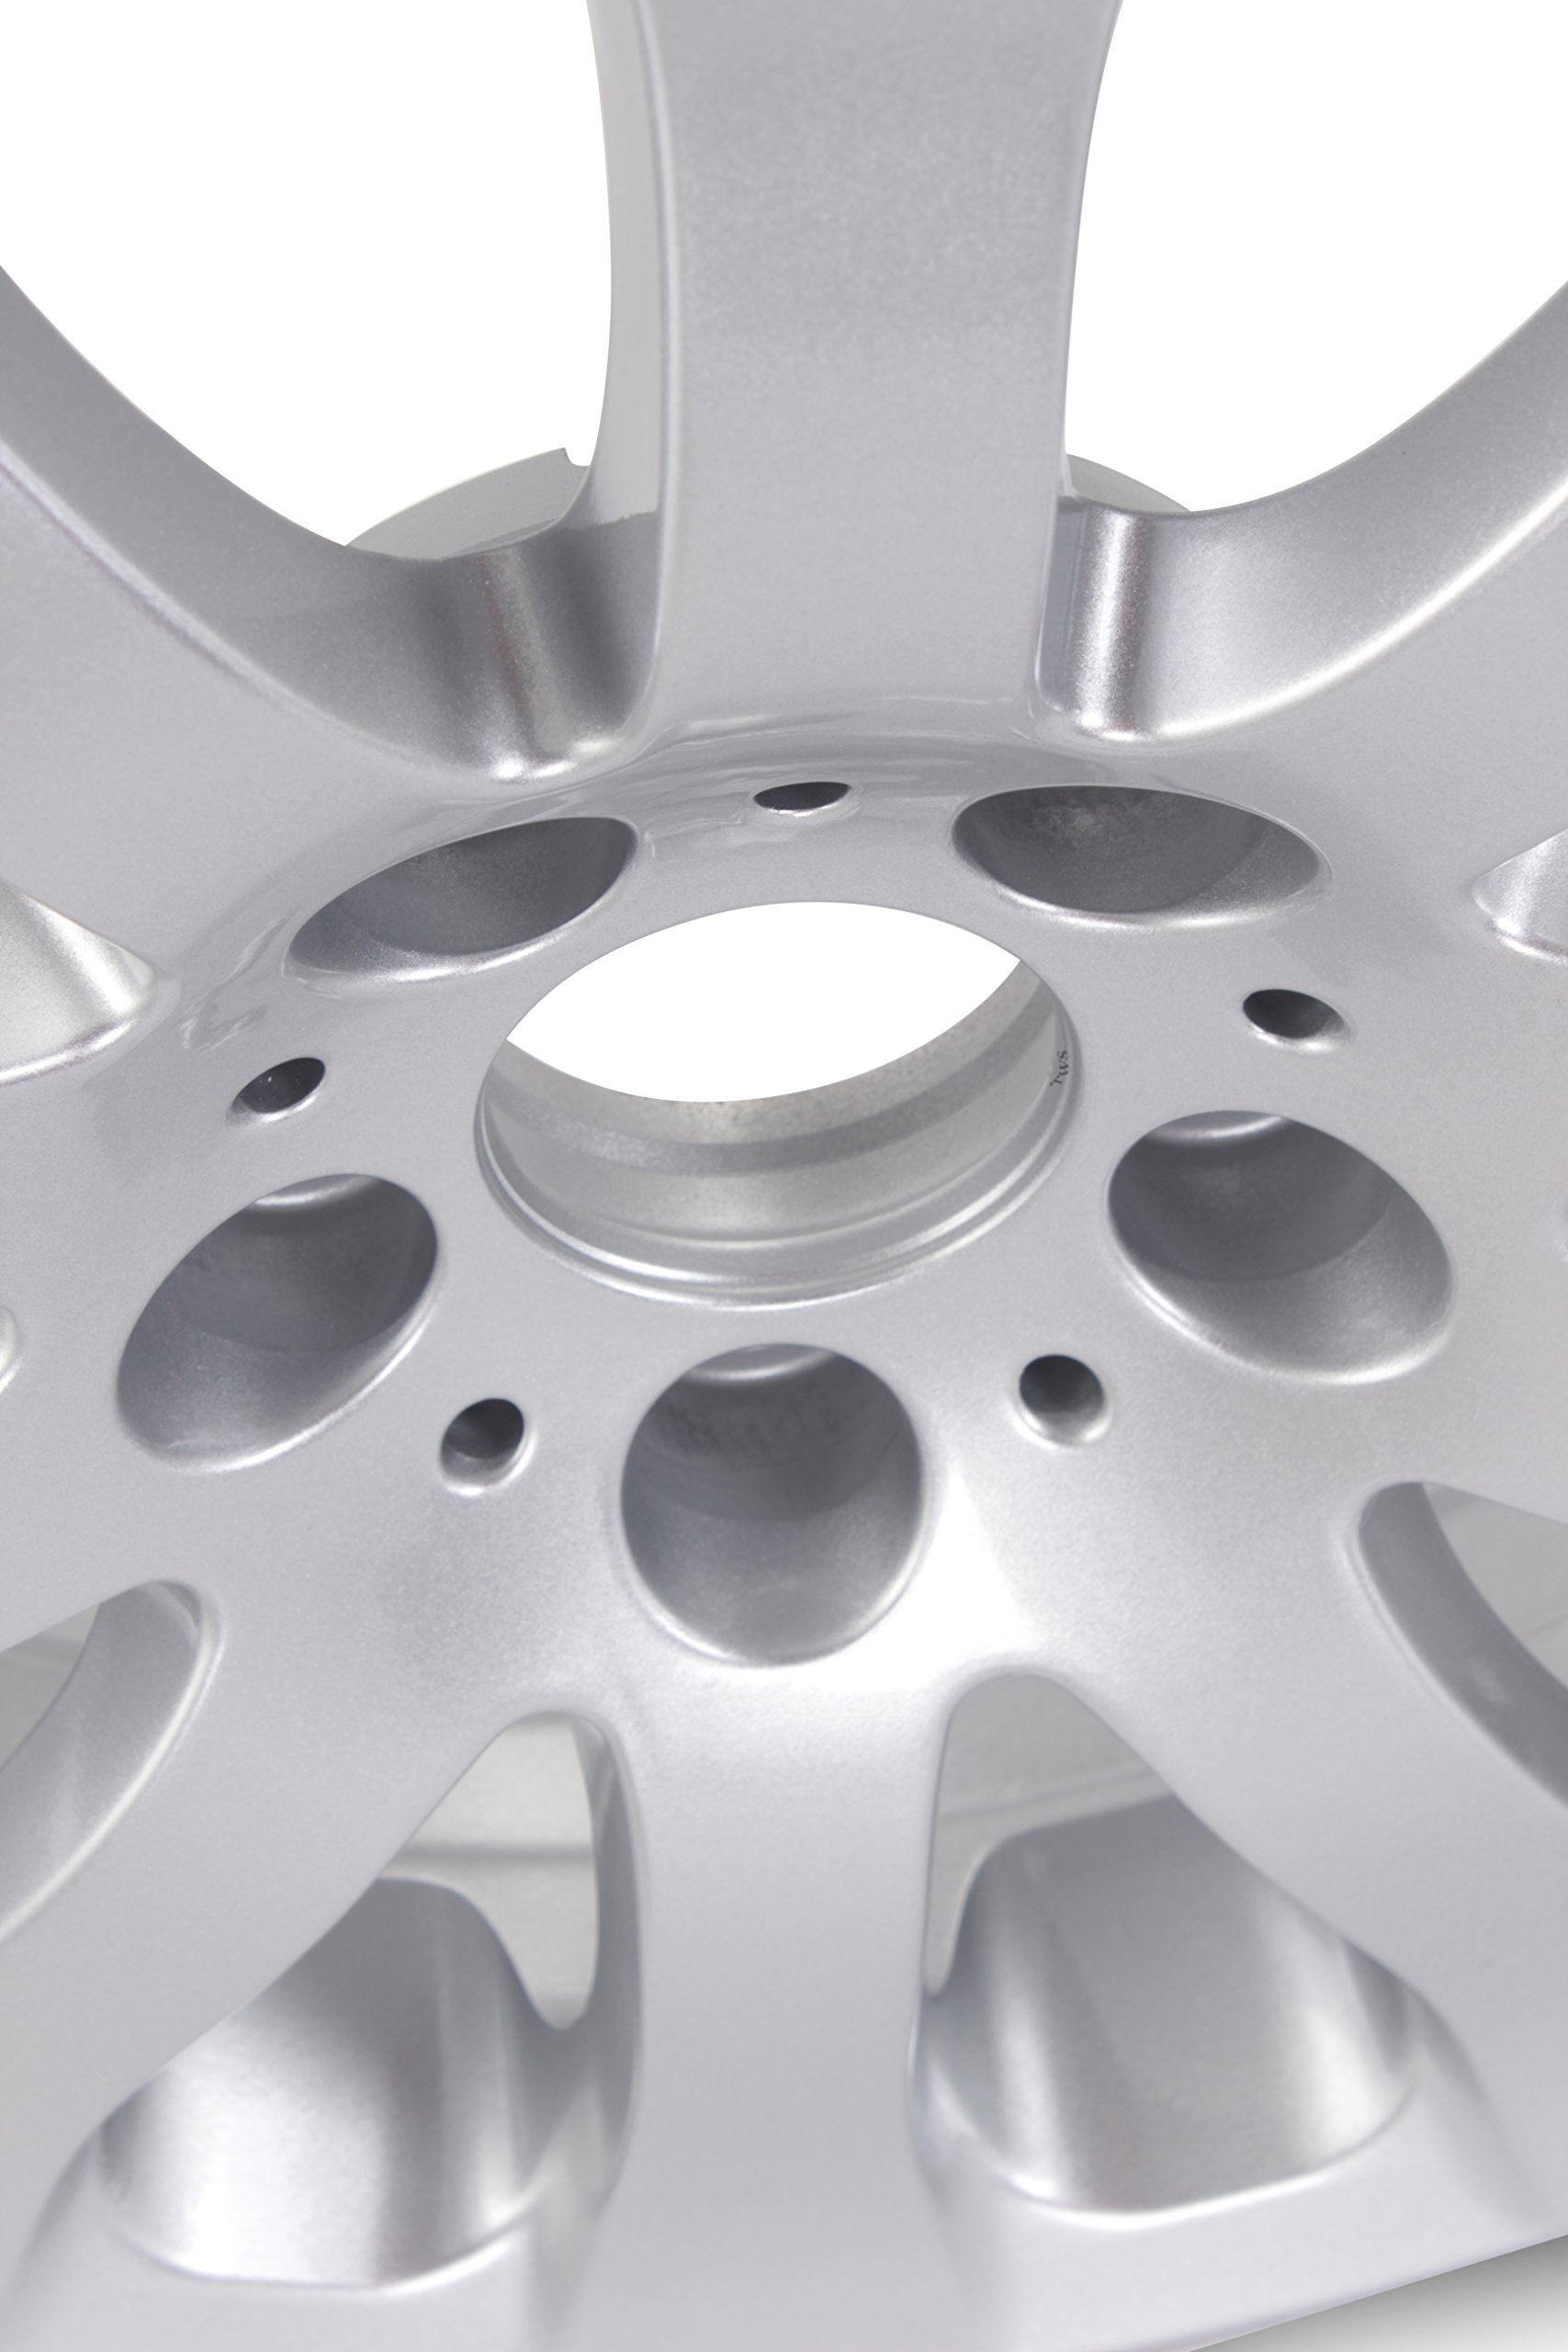 Brand New 17'' x 8'' Replacement Wheel for BMW 3 Series 2006-2013 Rim 59582 by Wheelership (Image #4)